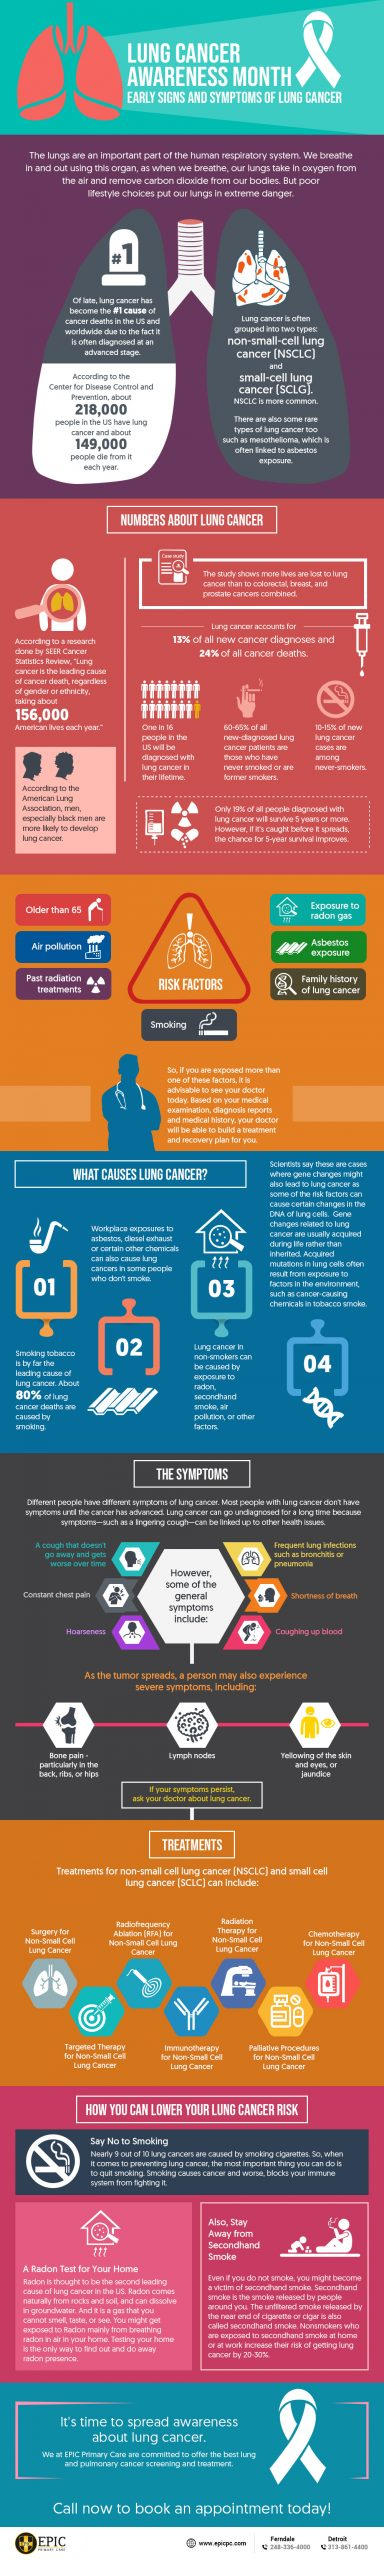 Lung Cancer Awareness Month: Early Signs and Symptoms of Lung Cancer